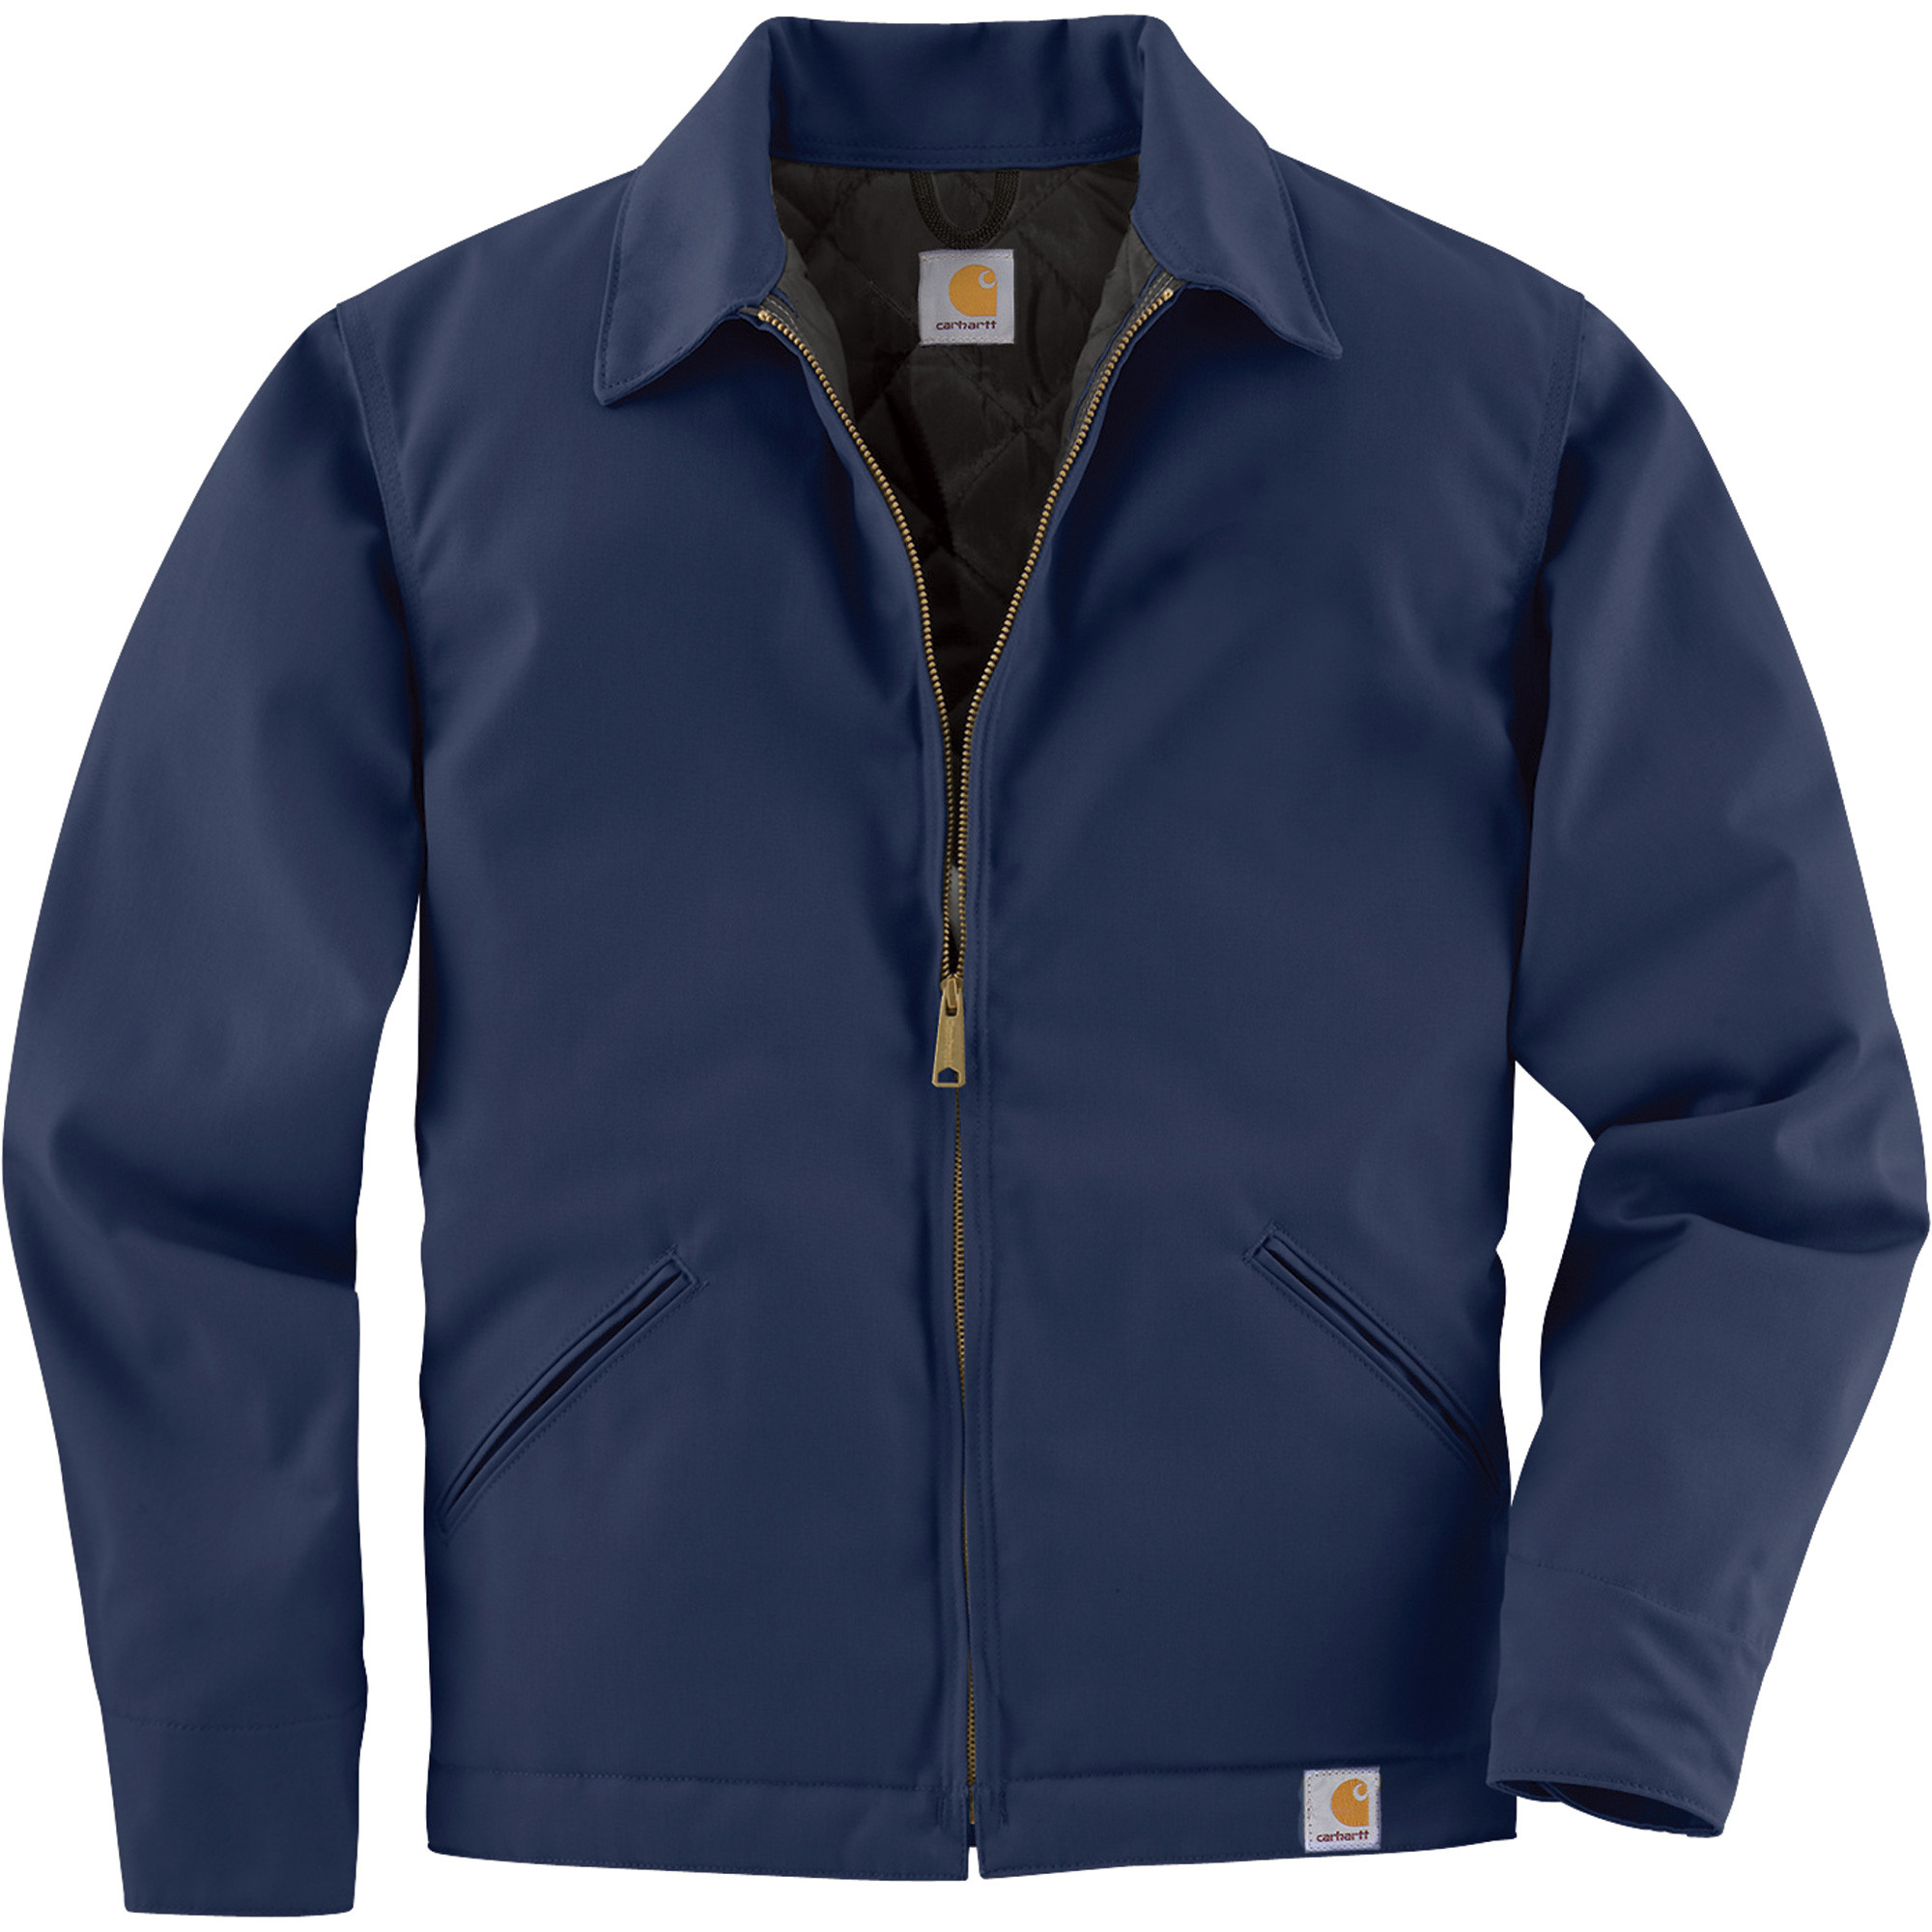 Куртка Carhartt Twill Work Jacket - J293 (Navy, S)